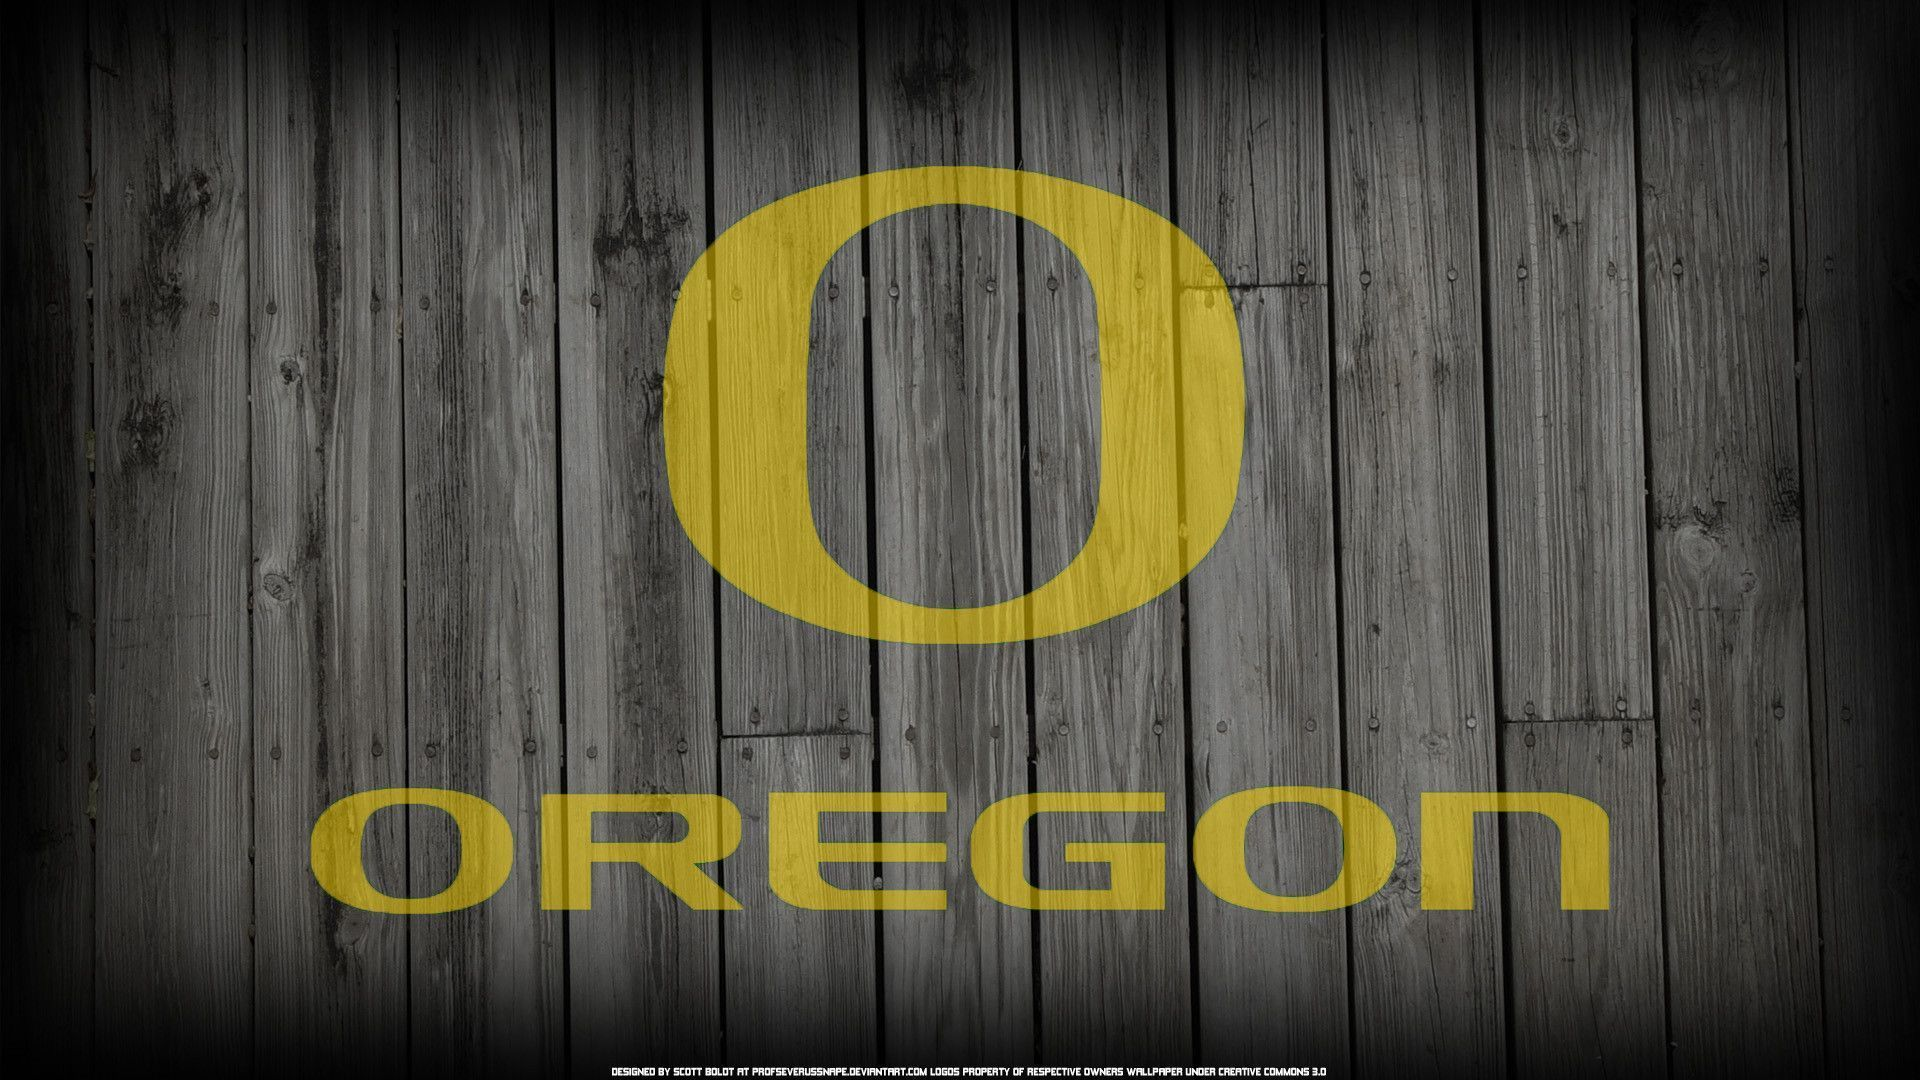 Oregon Desktop Wallpaper 1920 1080 Oregon Wallpaper 52 Wallpapers Adorable Wallpapers Oregon Ducks Logo Duck Wallpaper Logo Wallpaper Hd